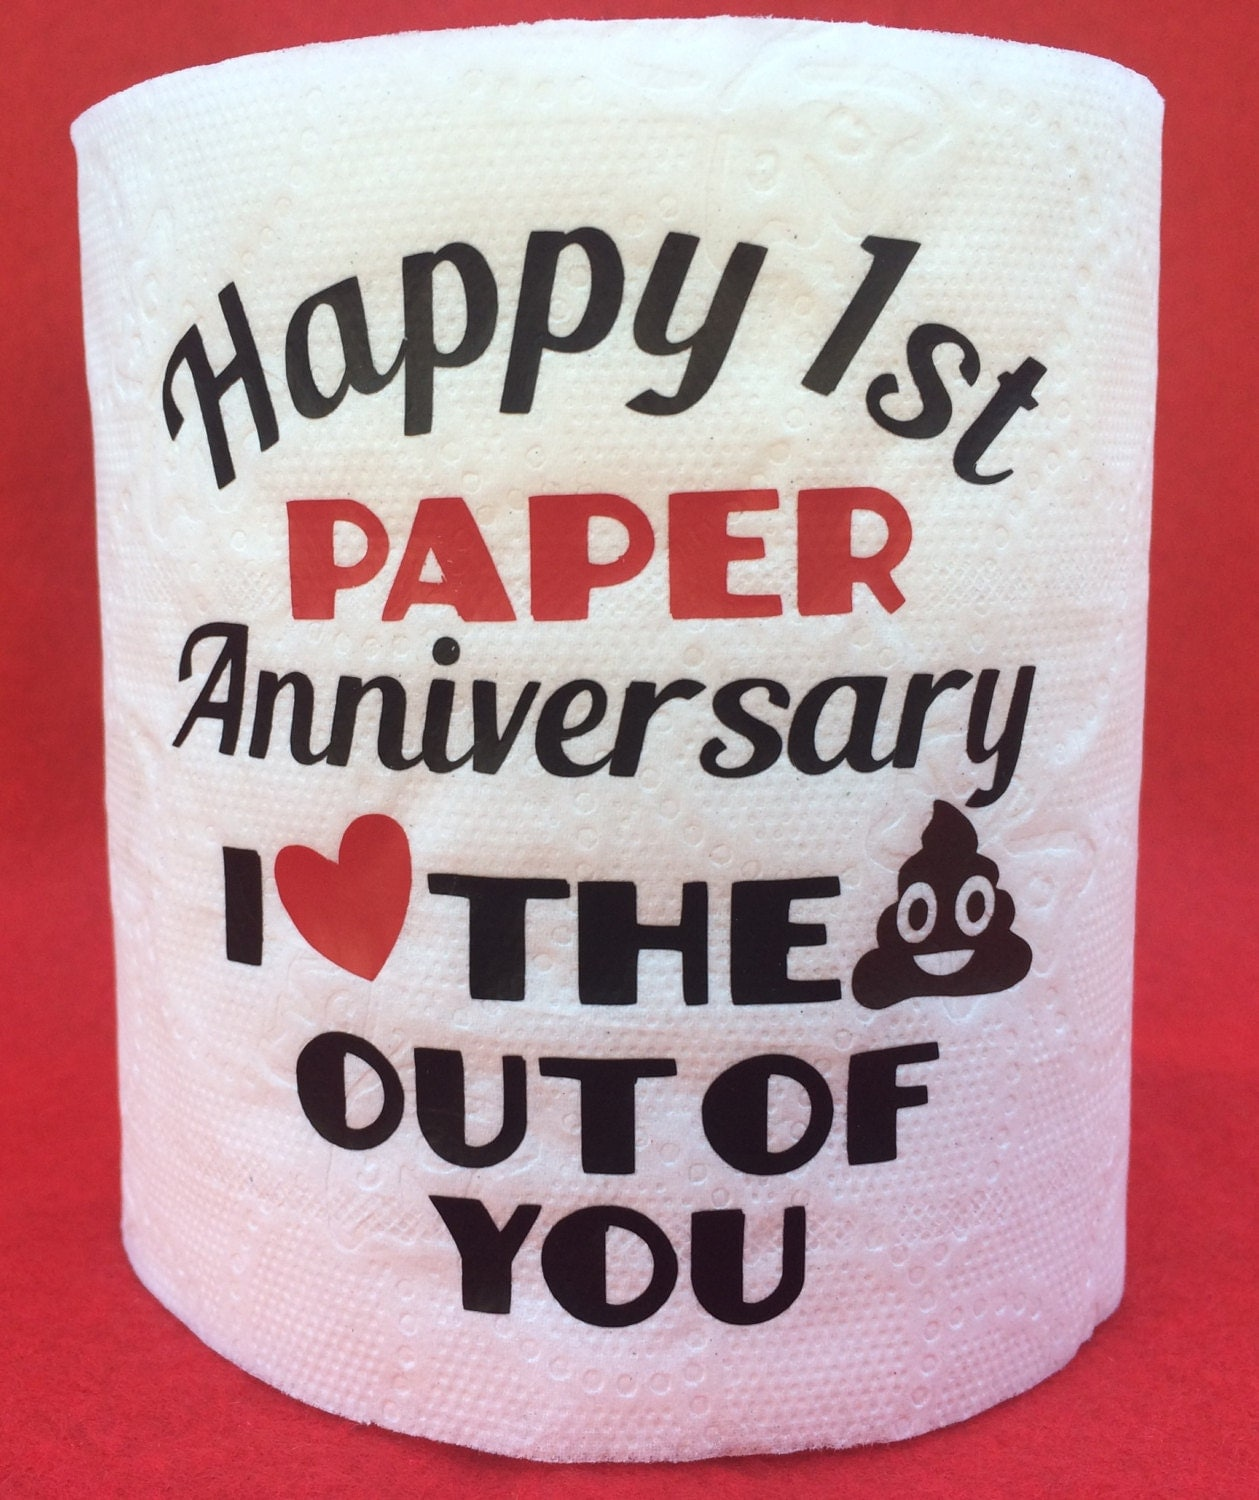 Best Gift For 1st Wedding Anniversary: Hilarious First 1st Paper Wedding Anniversary Toilet Paper Gag